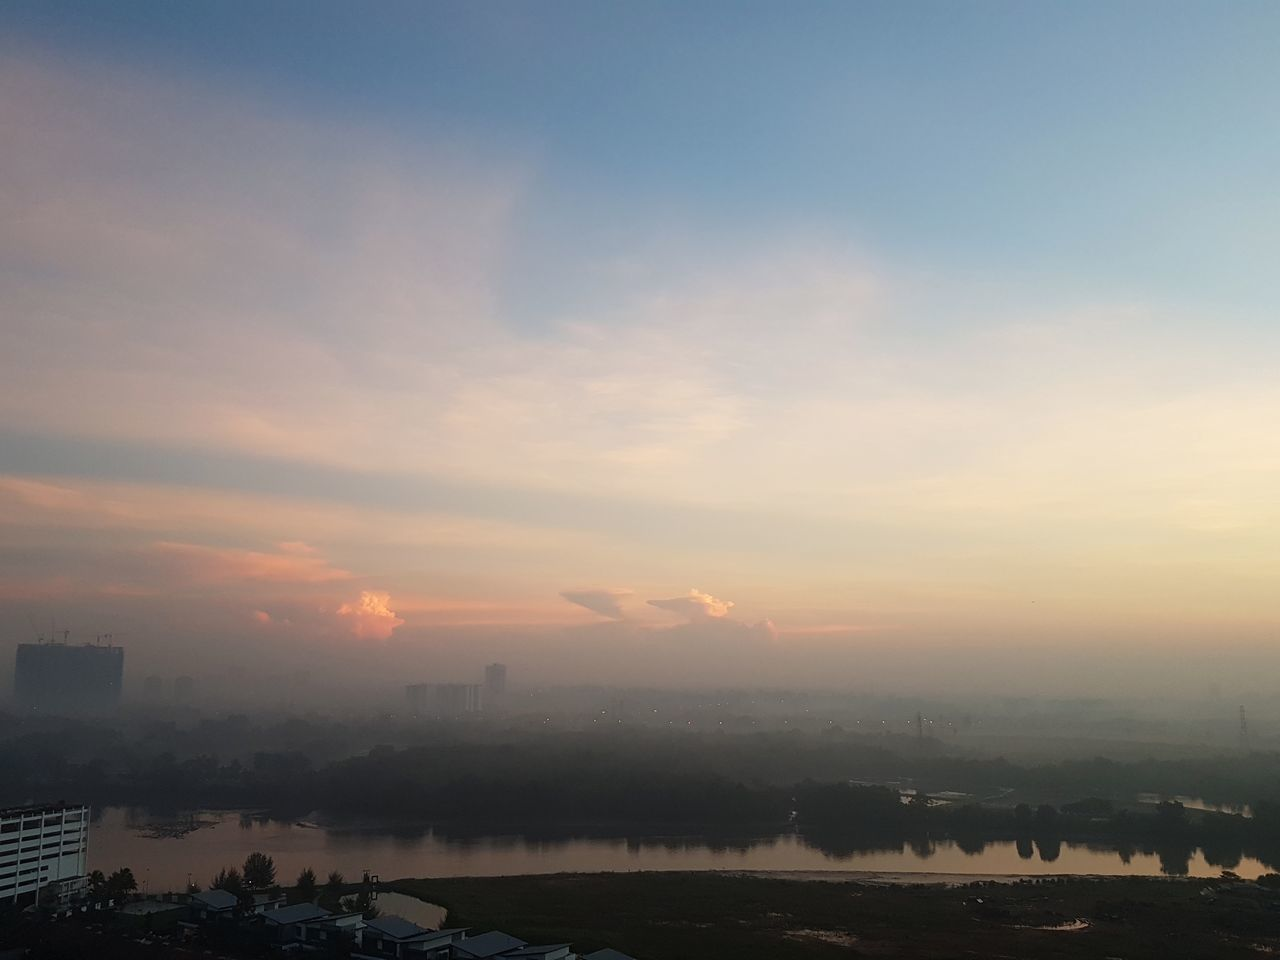 Fog Sunset Morning City Cloud - Sky Sky Environment Outdoors Tranquility Landscape Travel Destinations Mountain Scenics Vacations Dawn No People Social Issues Sun Nature Cold Temperature Johor Bahru Malaysia